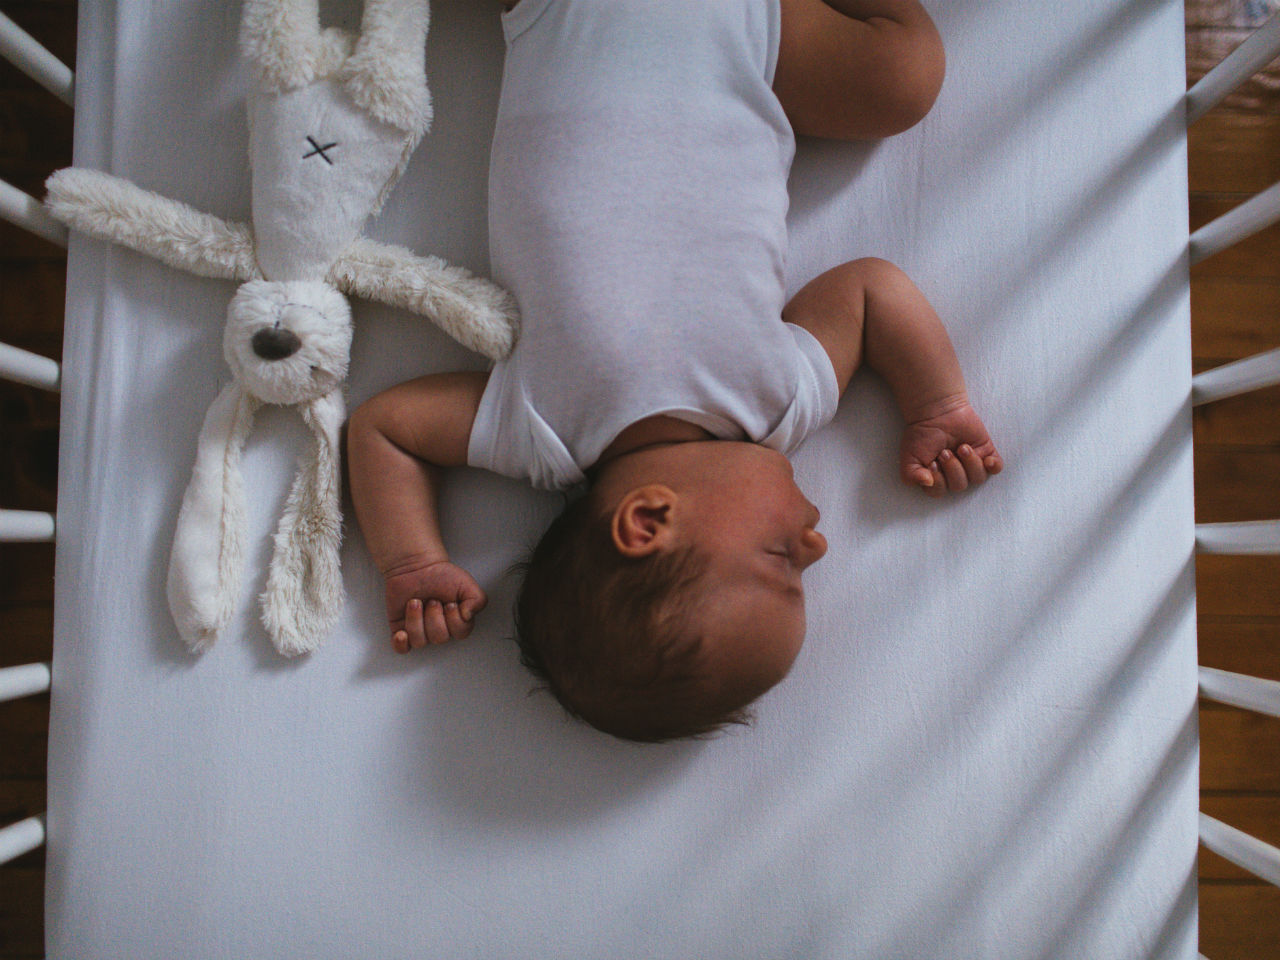 Baby sleeping in crib with stuffed rabbit